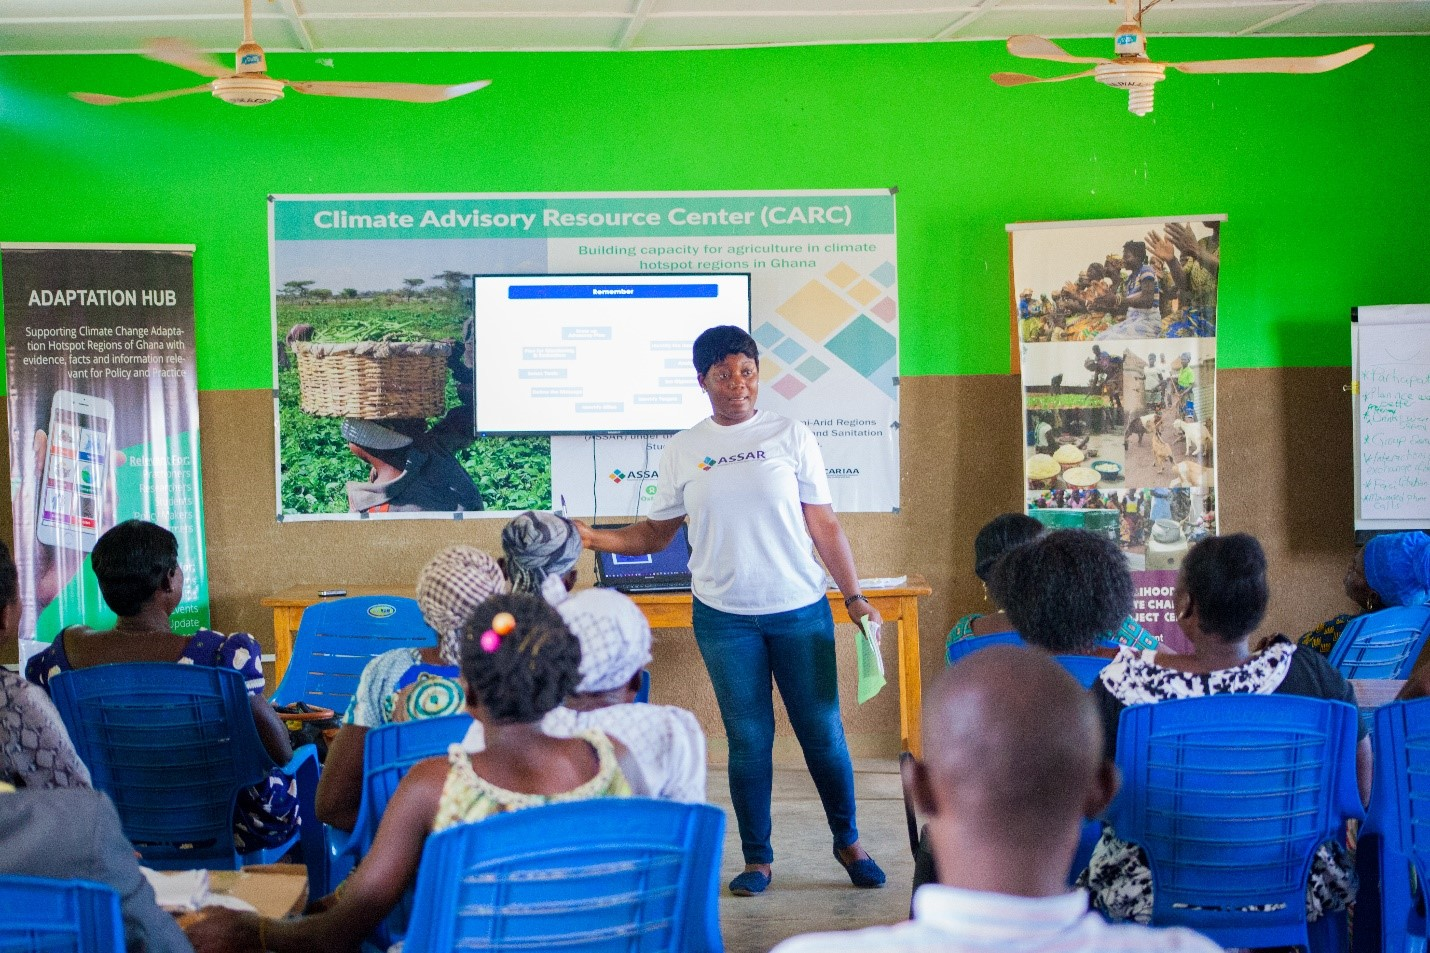 Promoting climate justice and adaptation in semi-arid Ghana